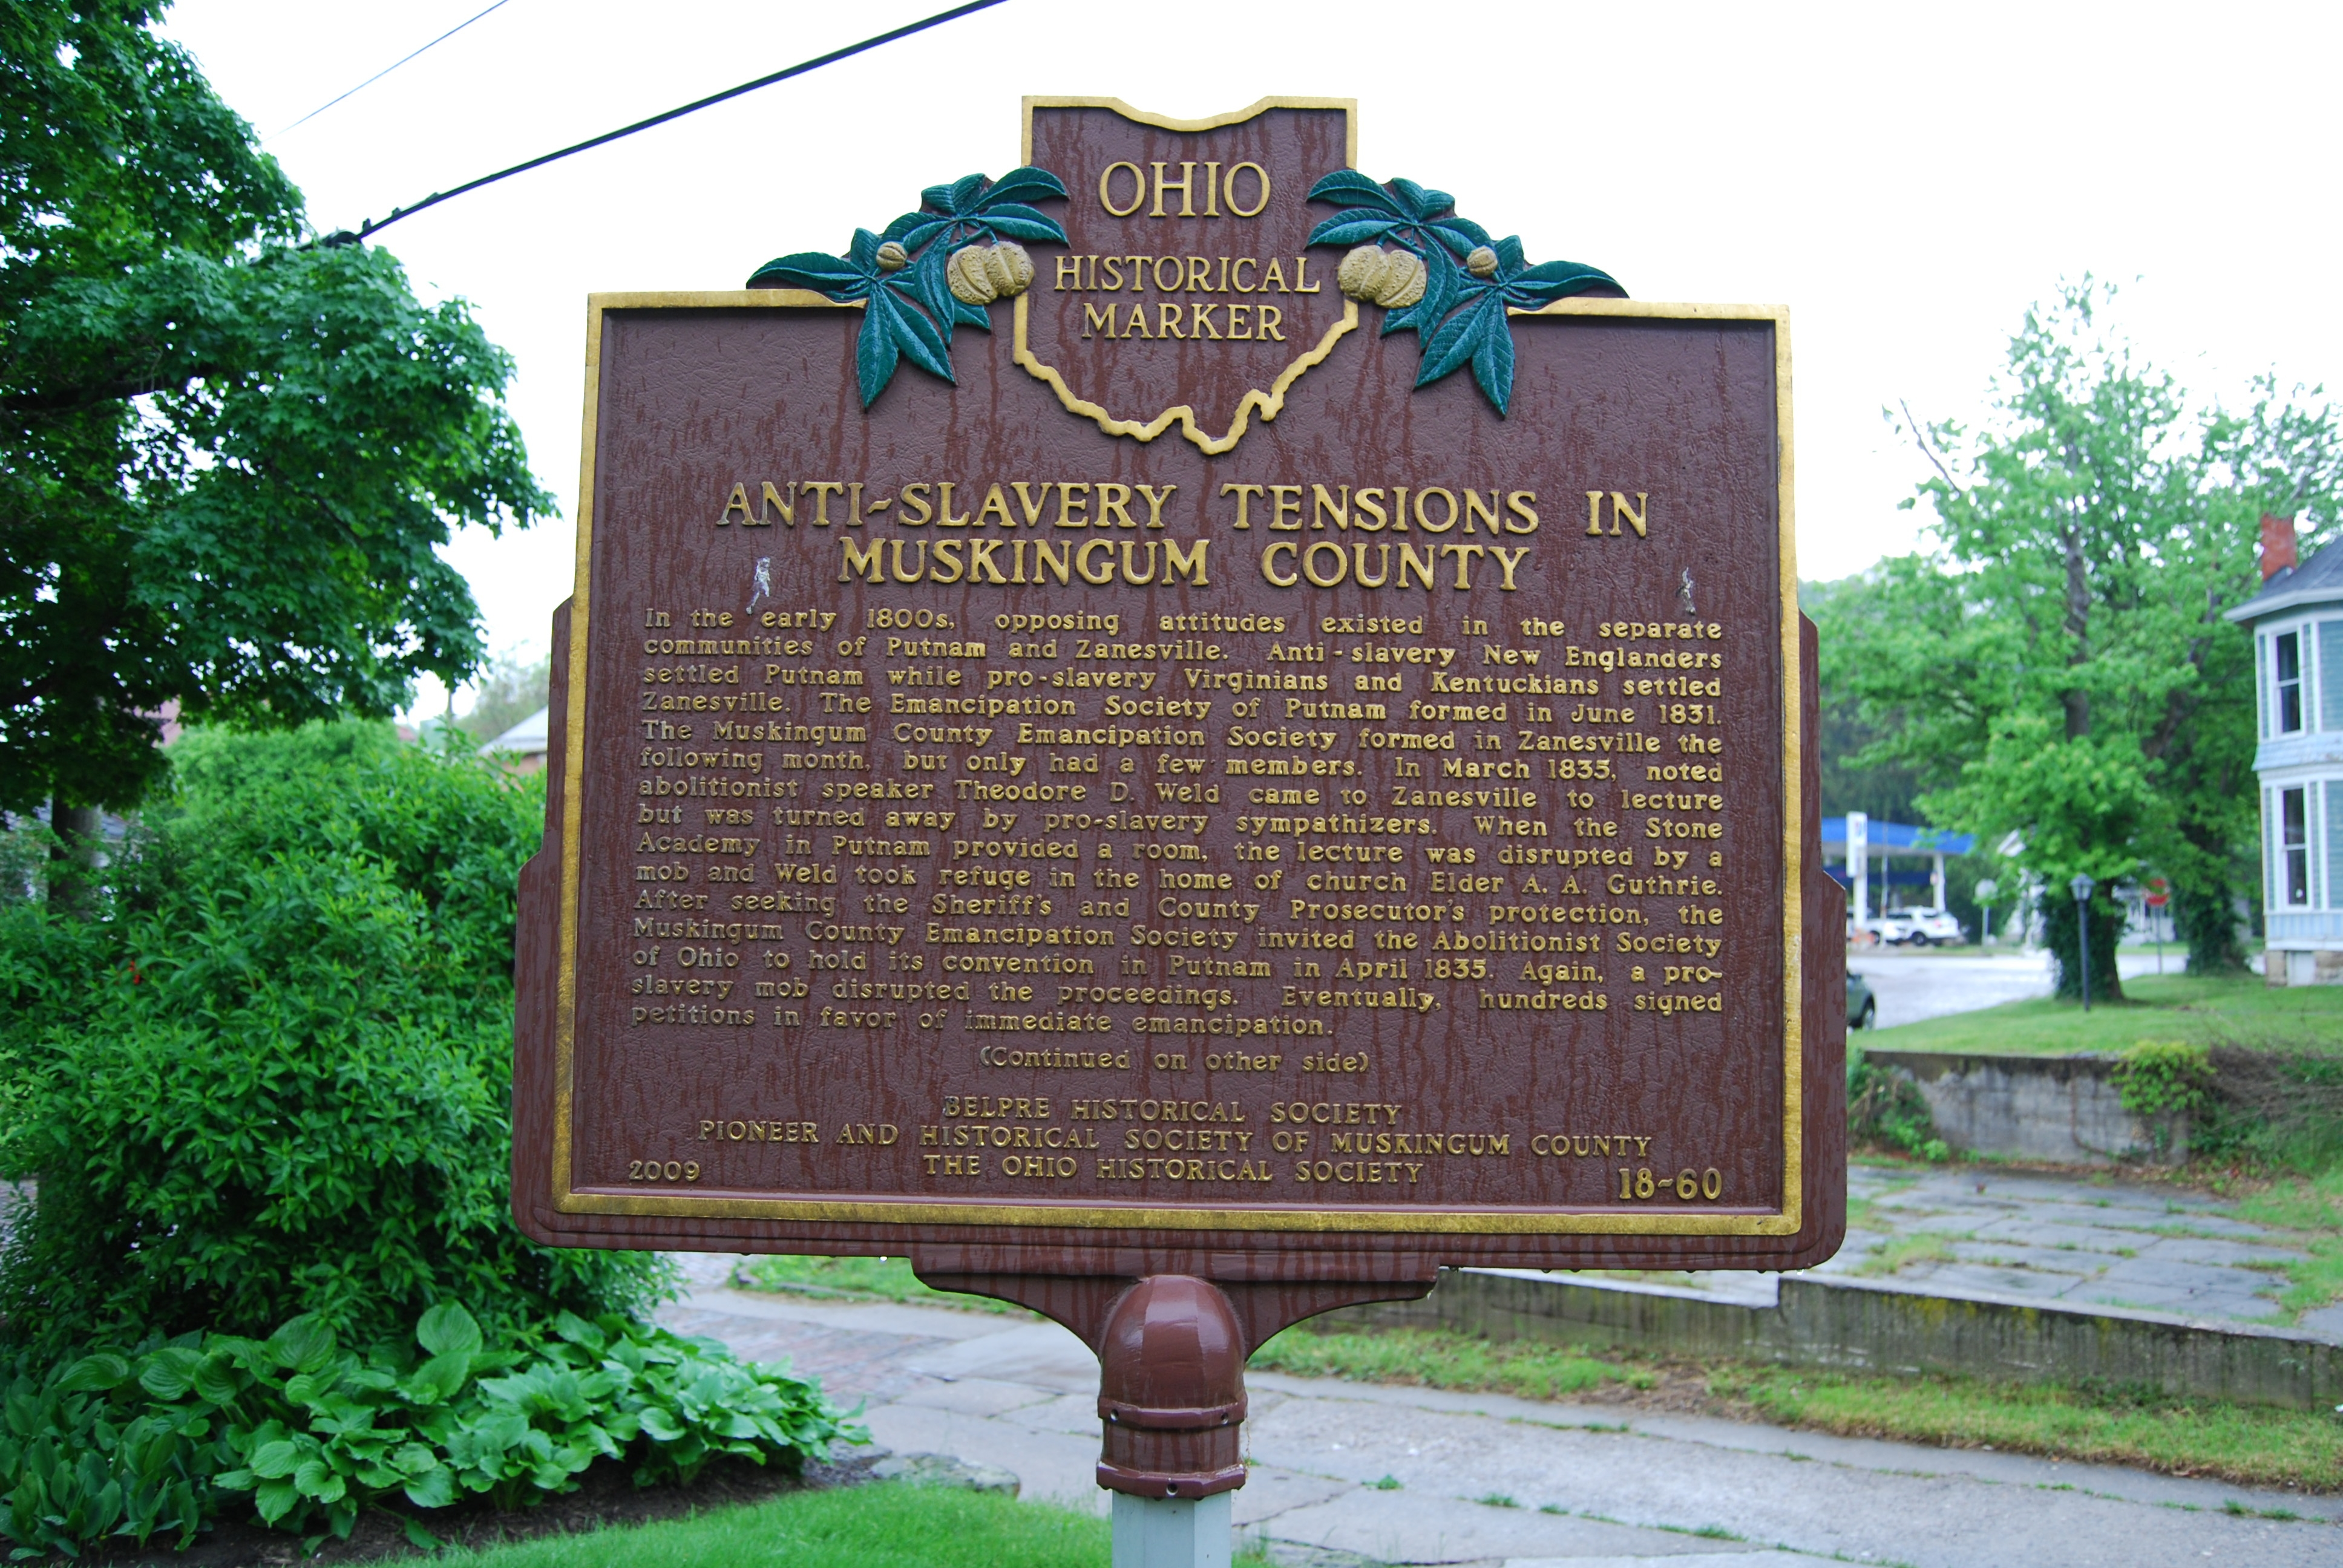 Anti-Slavery Tensions in Muskingum County Marker